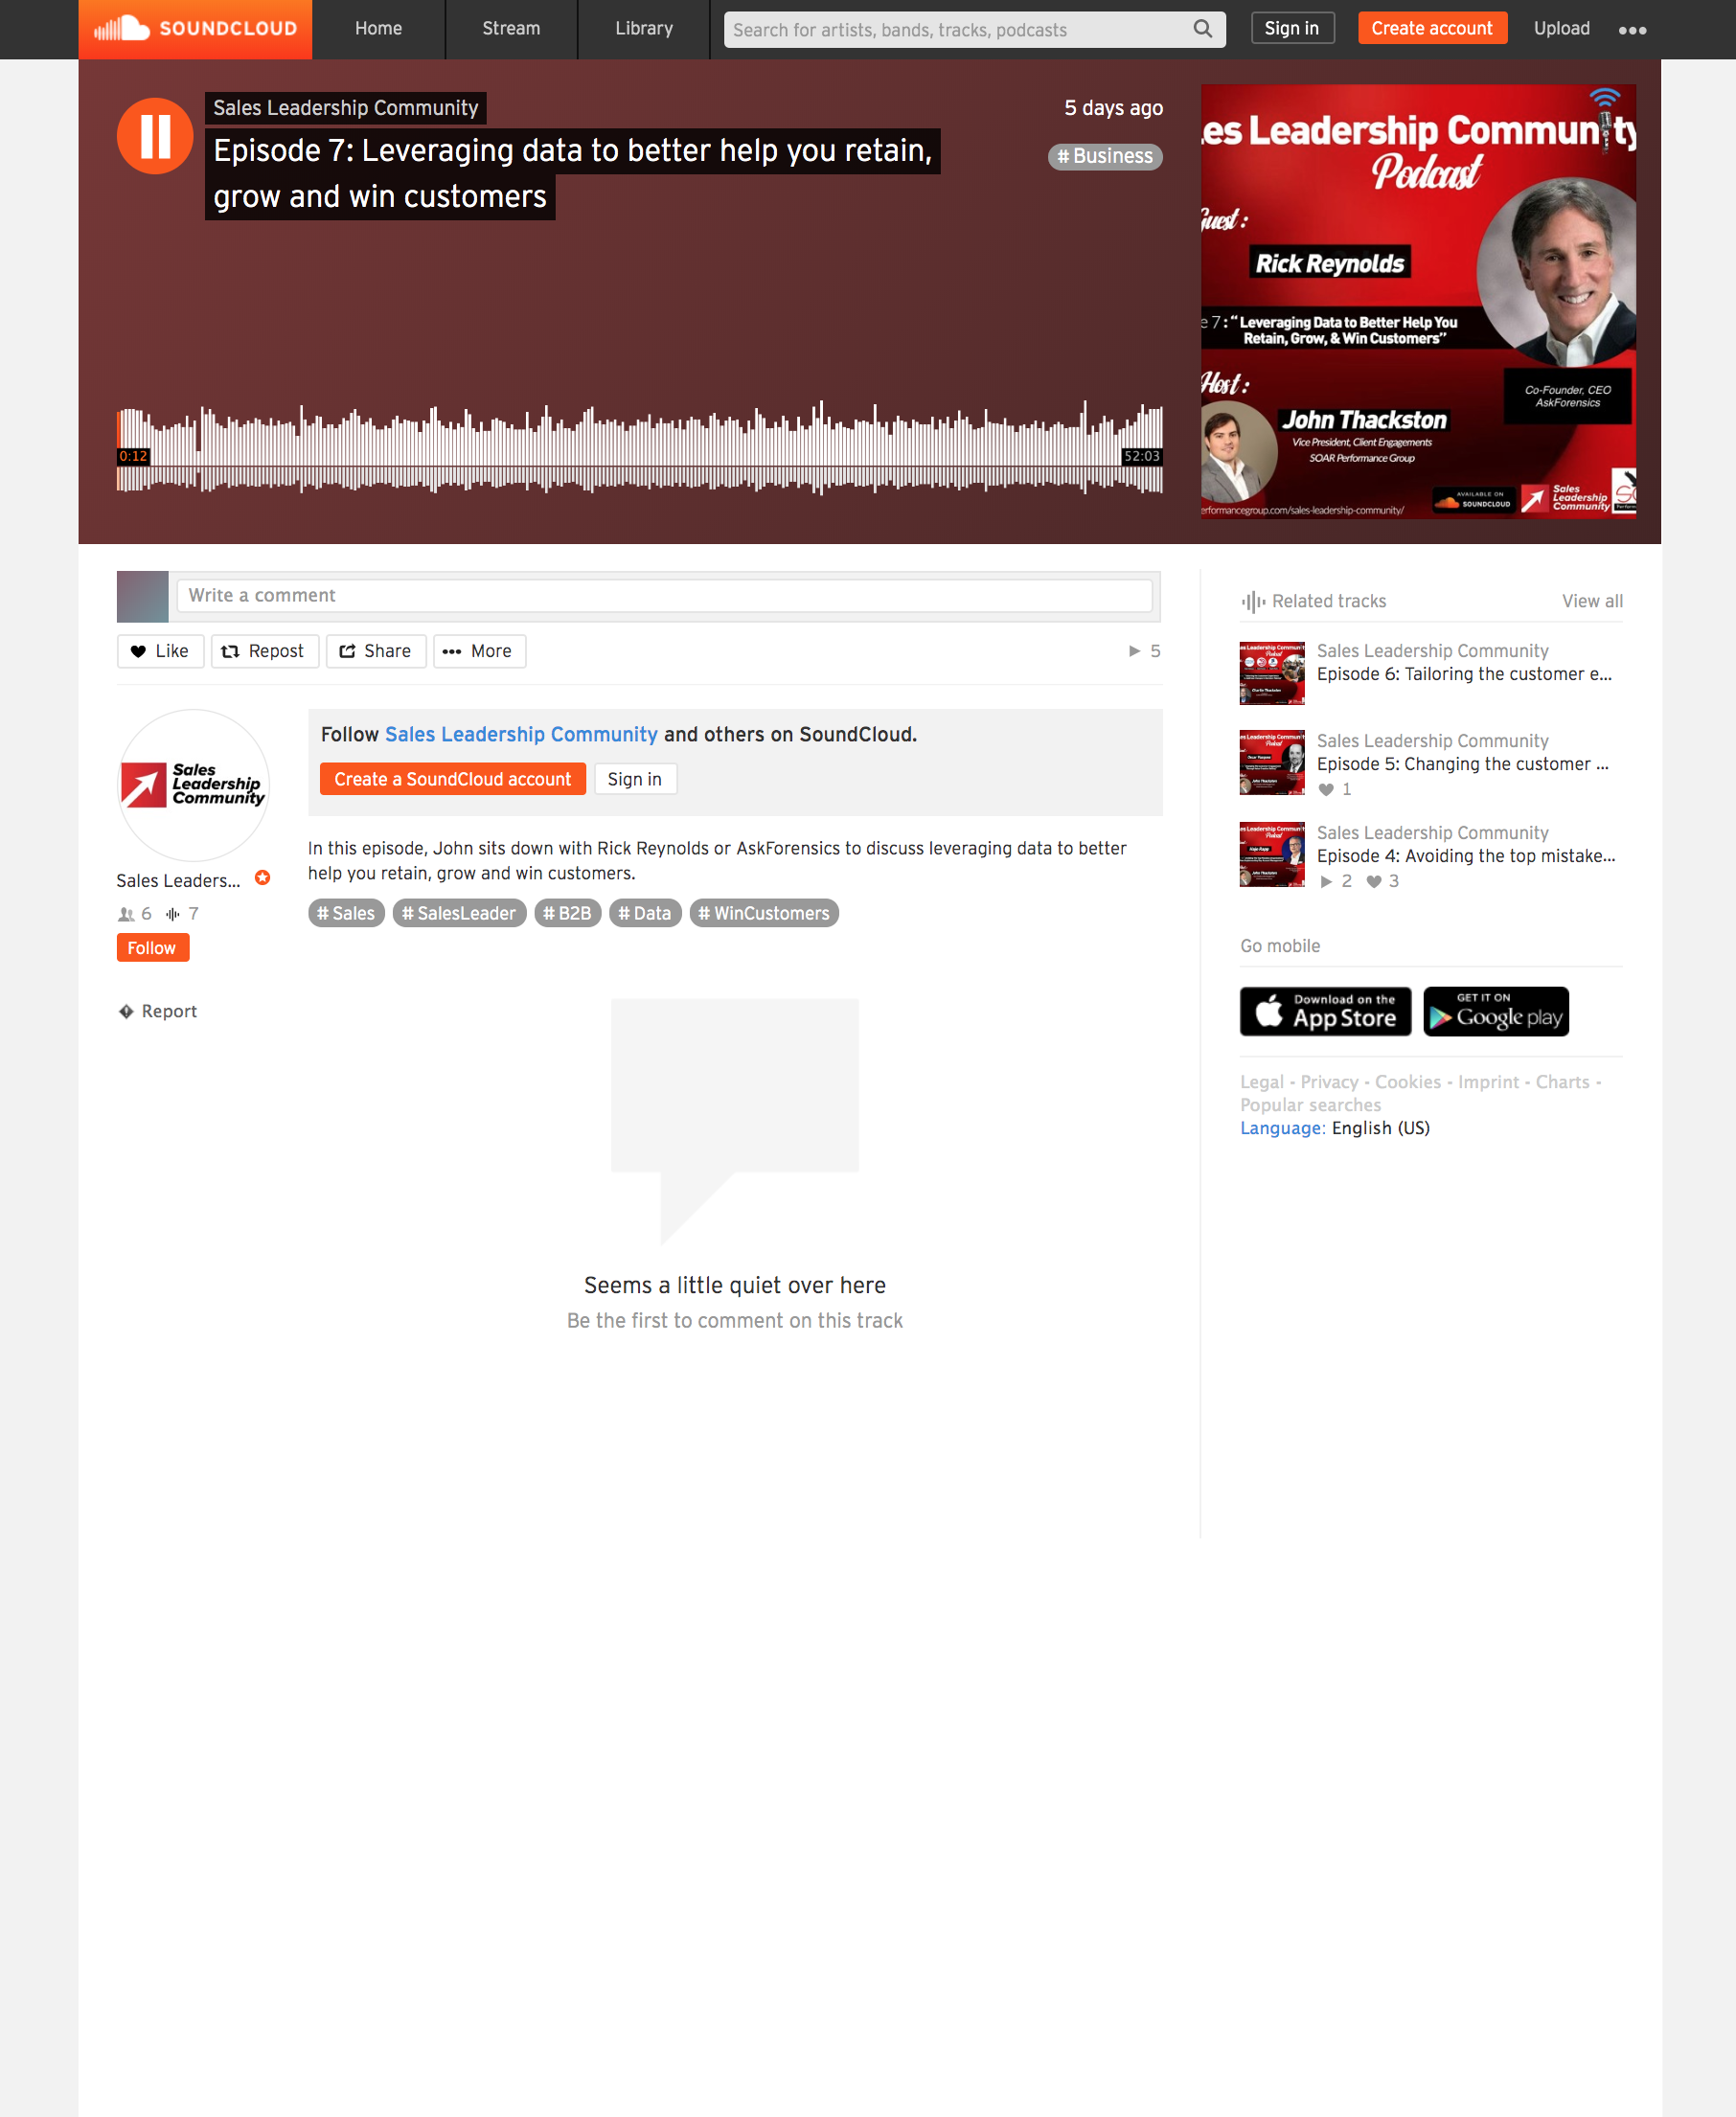 Sales Leadership Community Podcast – John Thackston (VP, Client Engagements, SOAR Performance Group) Interview of Rick Reynolds (CEO, AskForensics)   June 2019